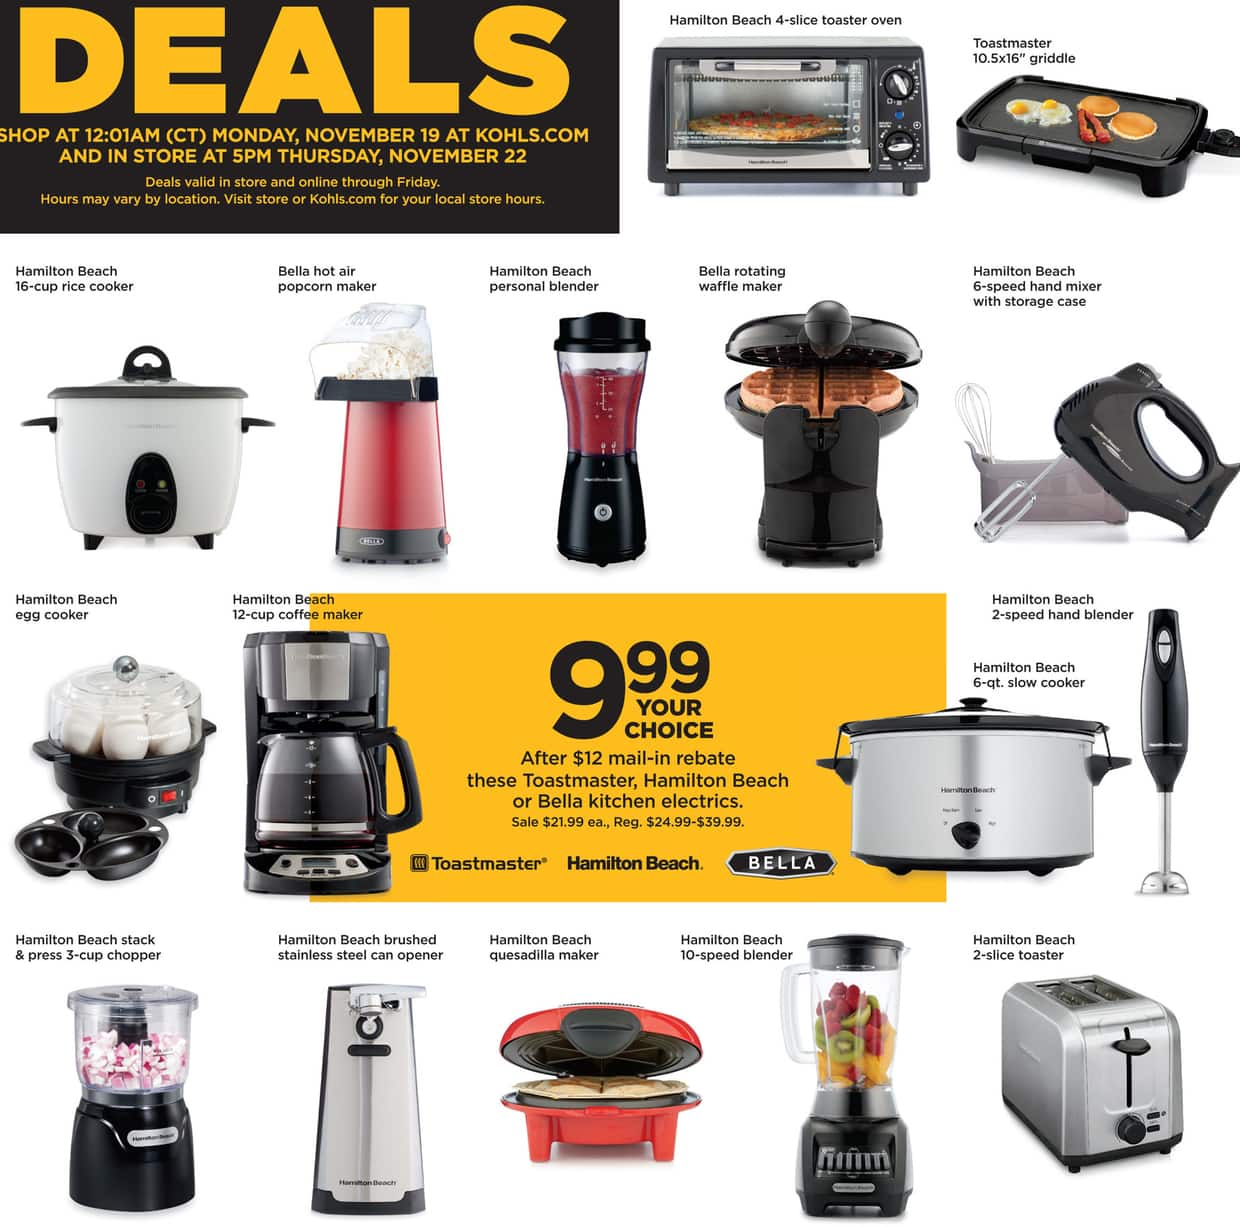 bella kitchen aid pro 600 kohl s black friday select toastmaster hamilton beach or electrics for 9 99 after 12 00 rebate